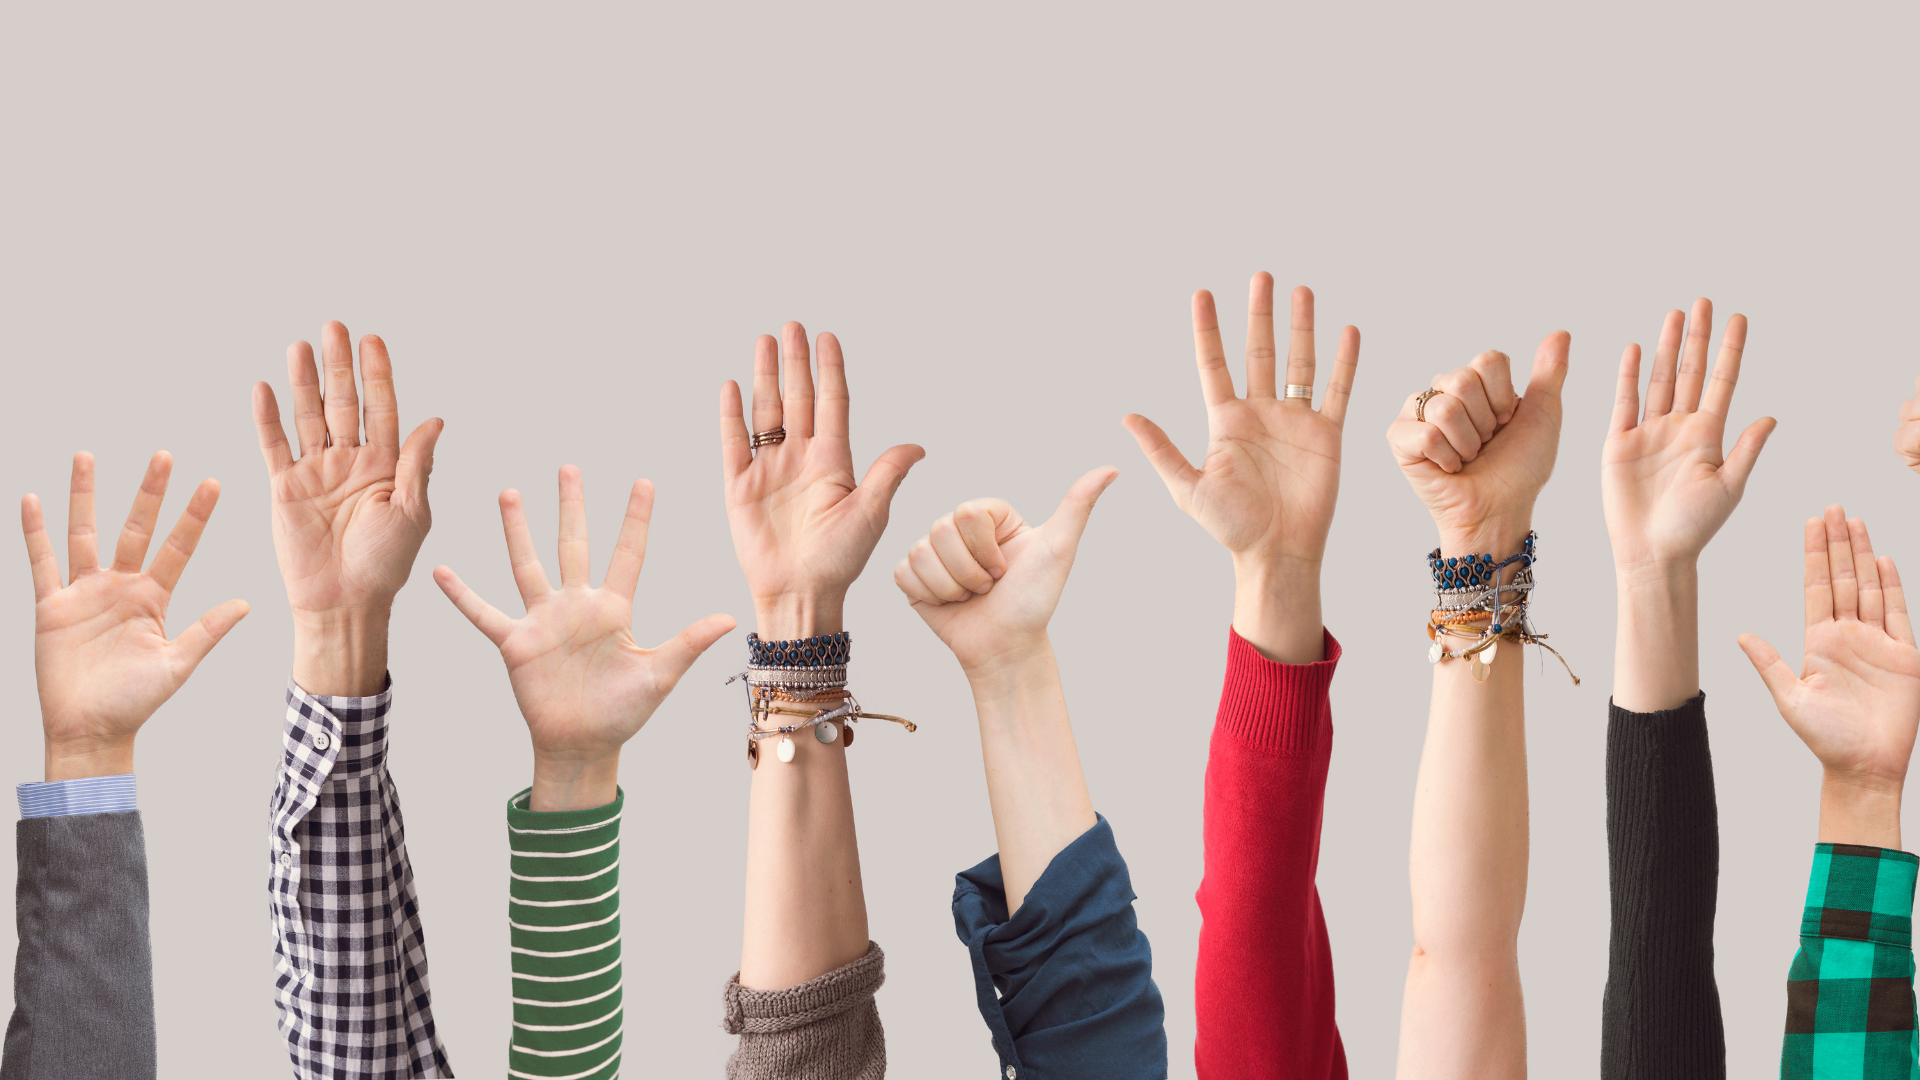 Image shows various raised hands.